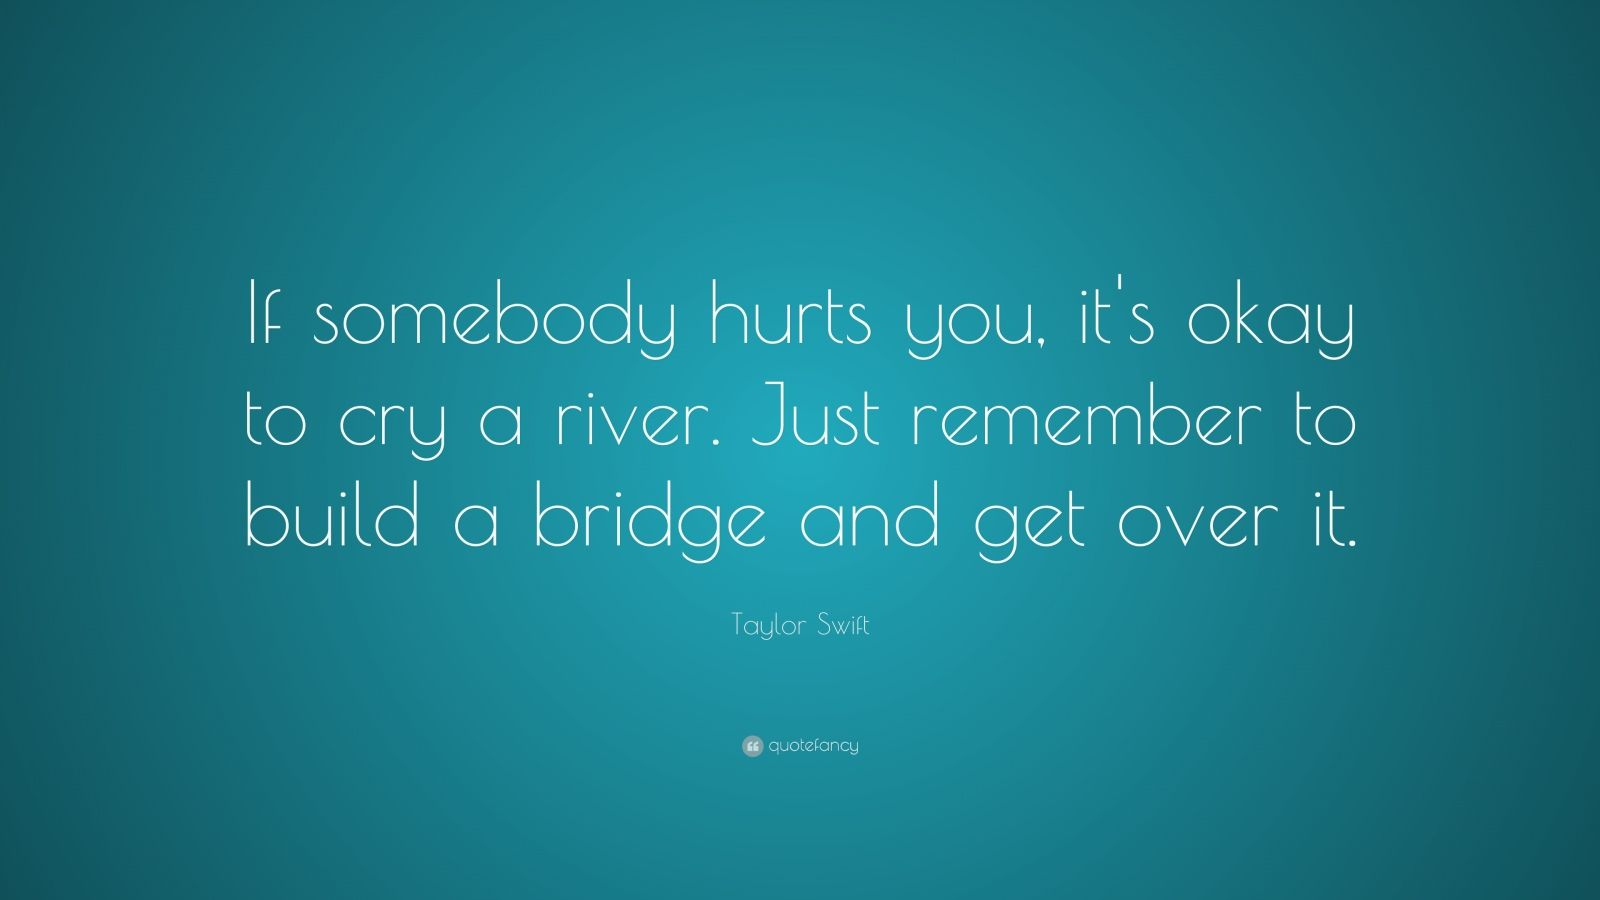 """Taylor Swift Quote: """"If somebody hurts you, it's okay to cry a river. Just remember to build a bridge and get over it."""""""